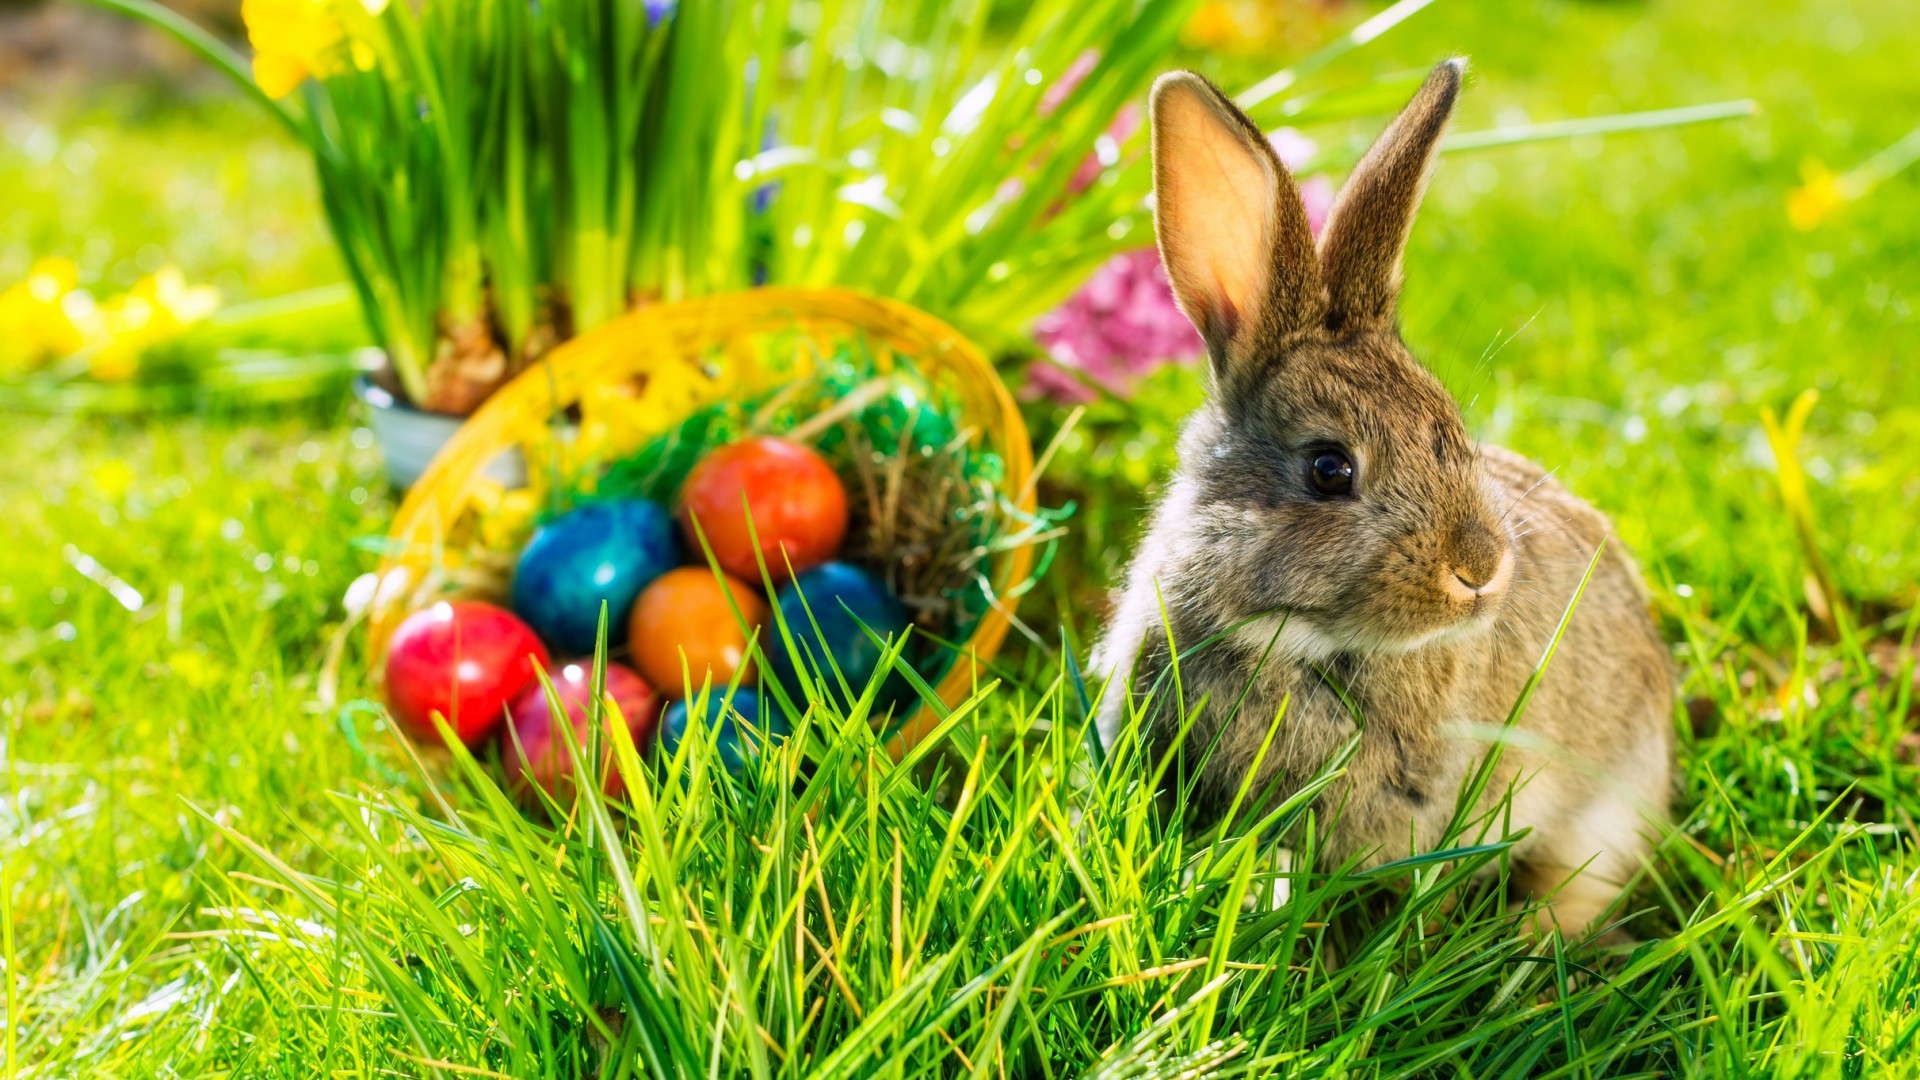 Alfold Gyongye Hotel Easter Time Fluffy Rabbit In The Green Grass Of Spring Wallpaper